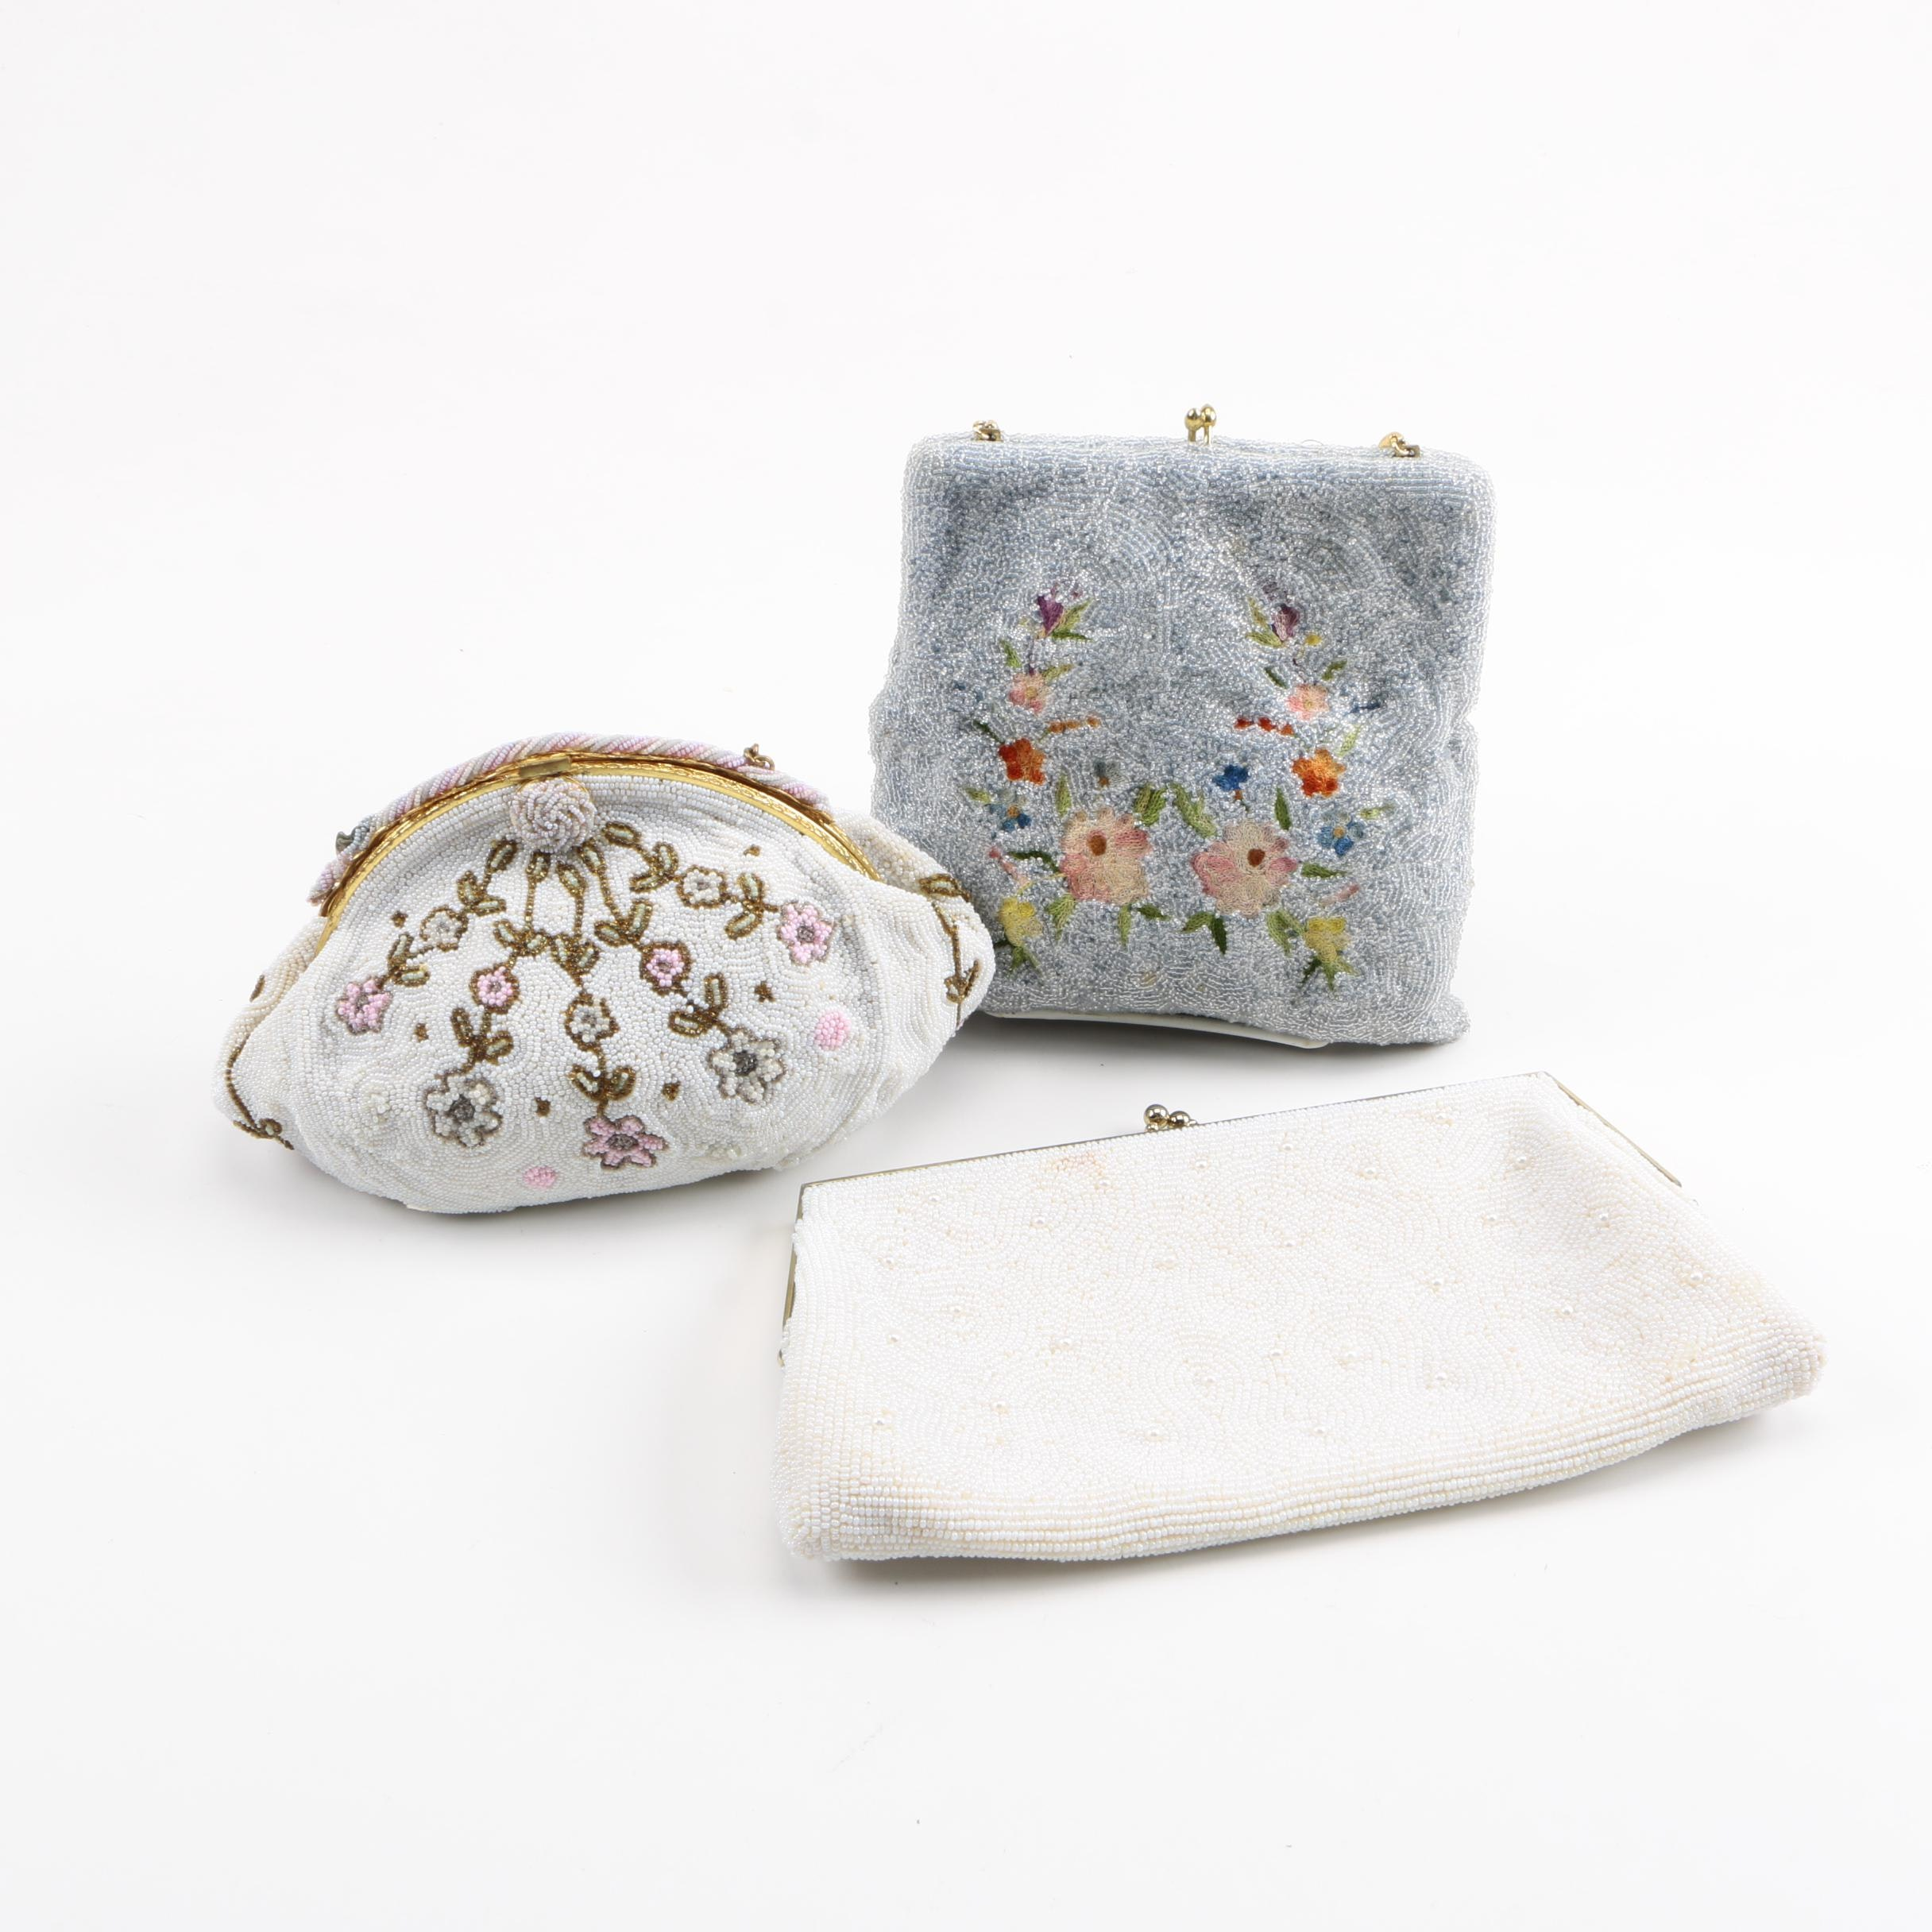 Collection of Vintage Evening Bags